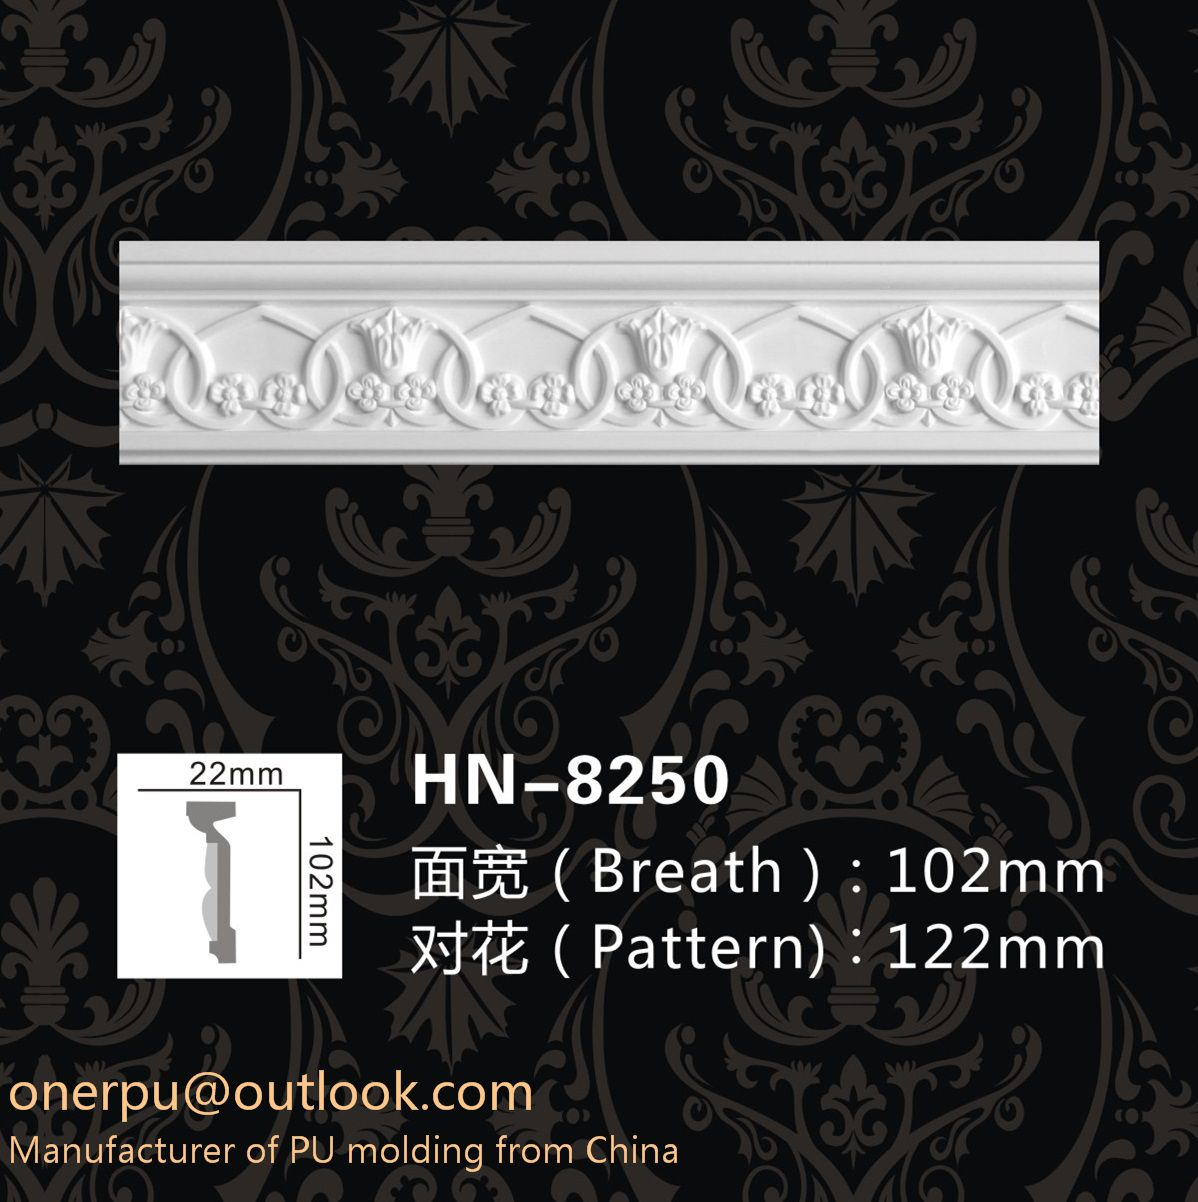 Home decor, moulding, Cornice, PU molding, Crown molding